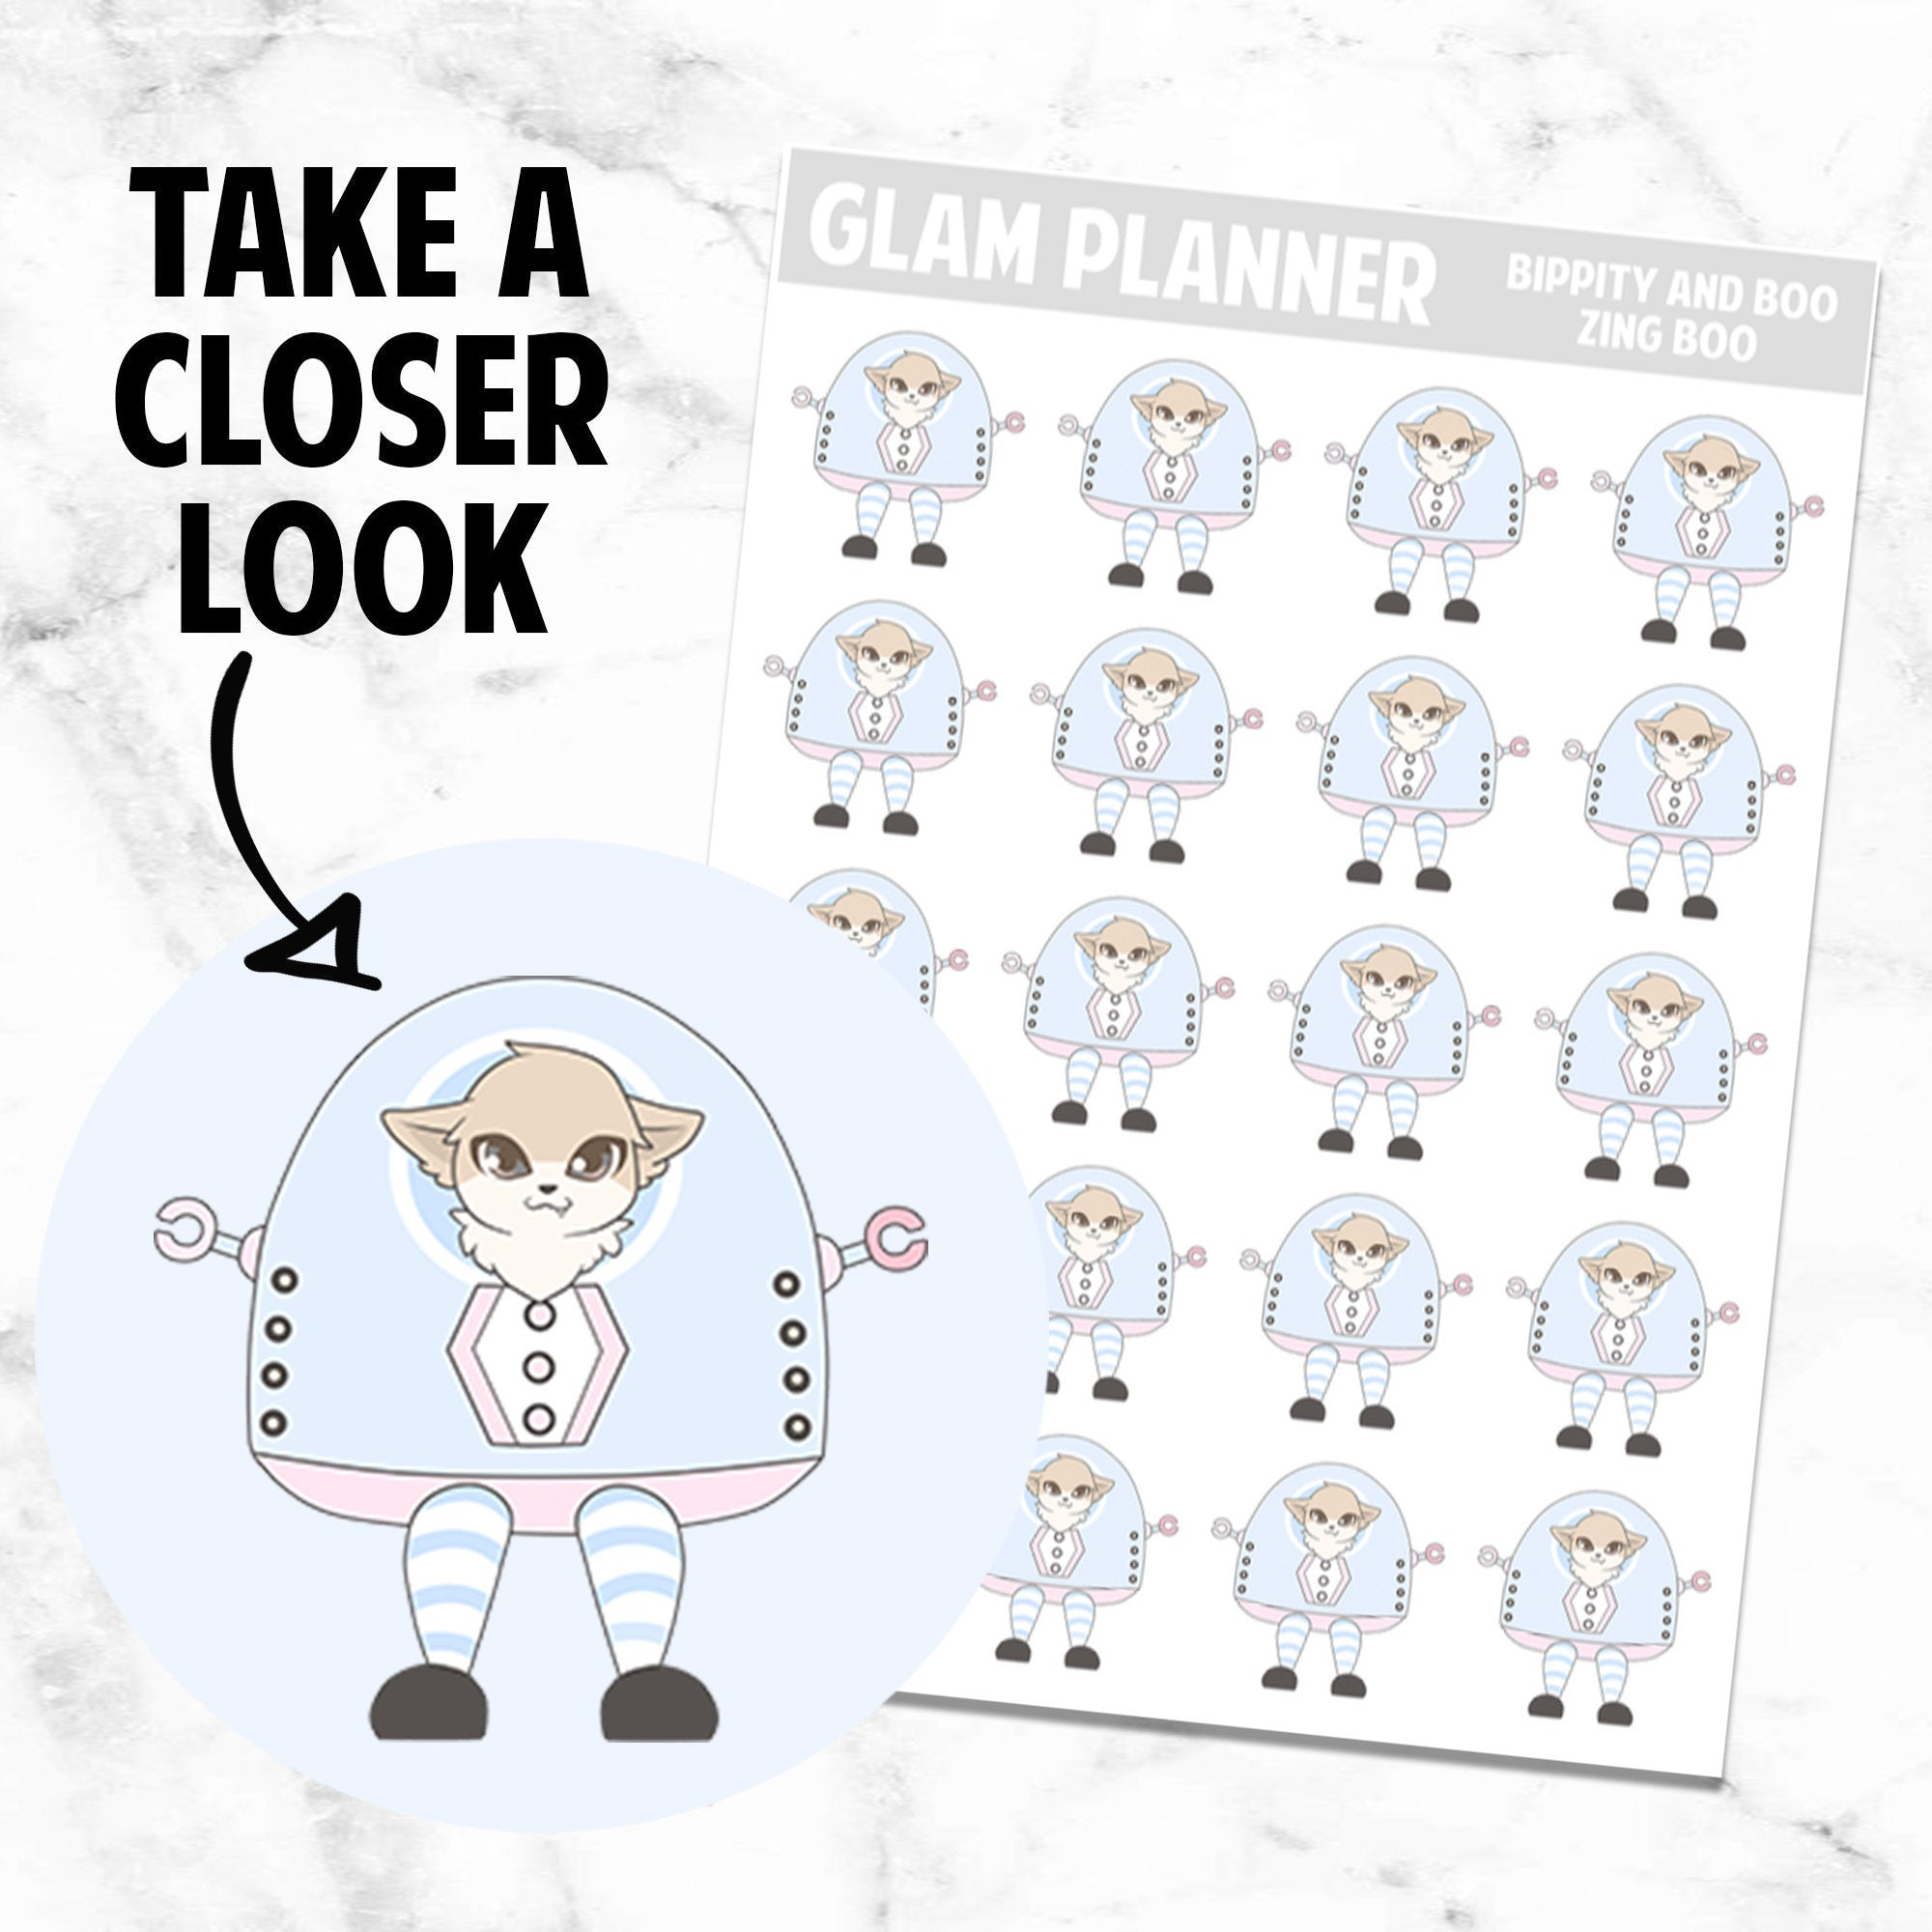 Zingbot: Bippity and Boo Kawaii Planner Character Stickers